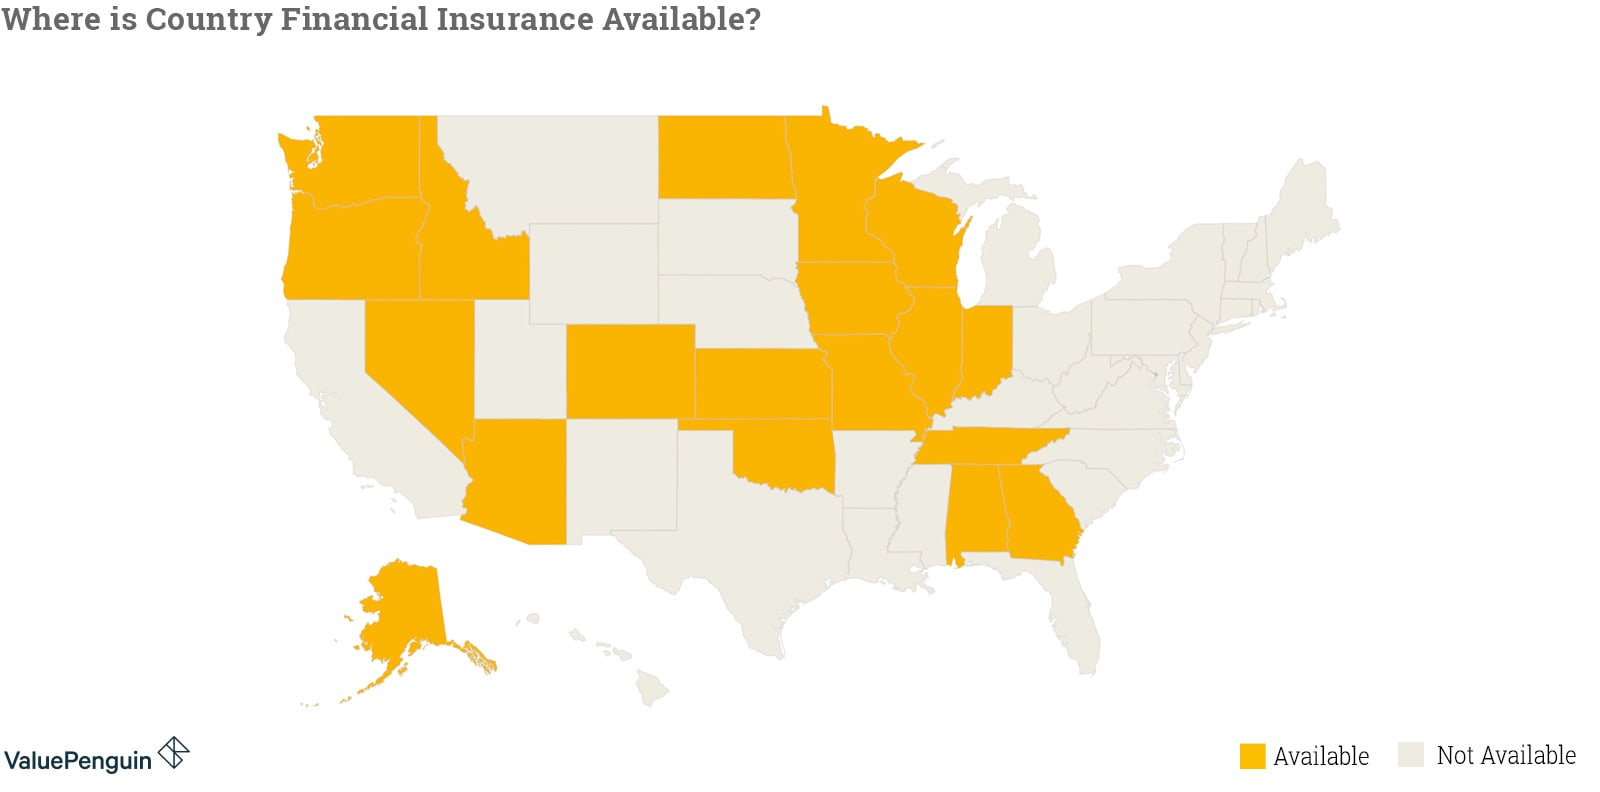 Map shows where Country Financial Insurance is available